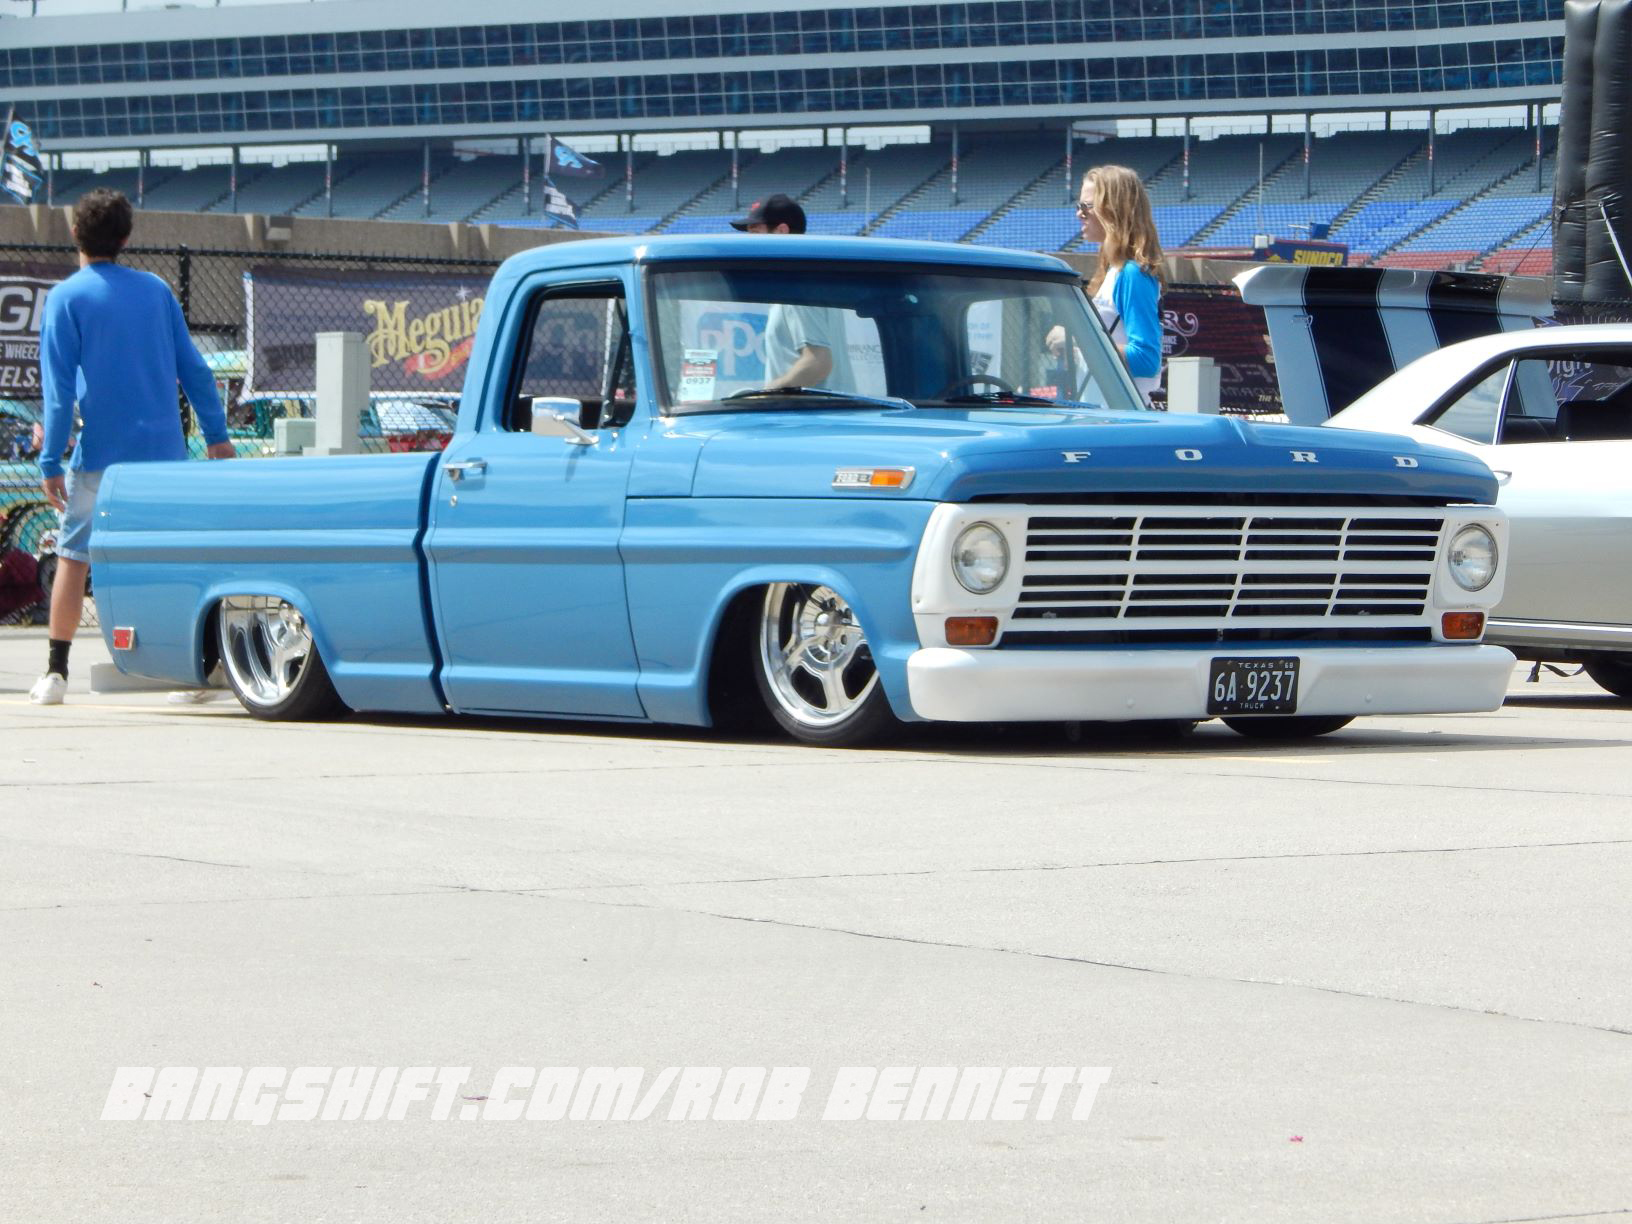 More Goodguys Lone Star Nationals Photo Coverage: Hot Rods, Customs, Muscle Cars, And Trucks